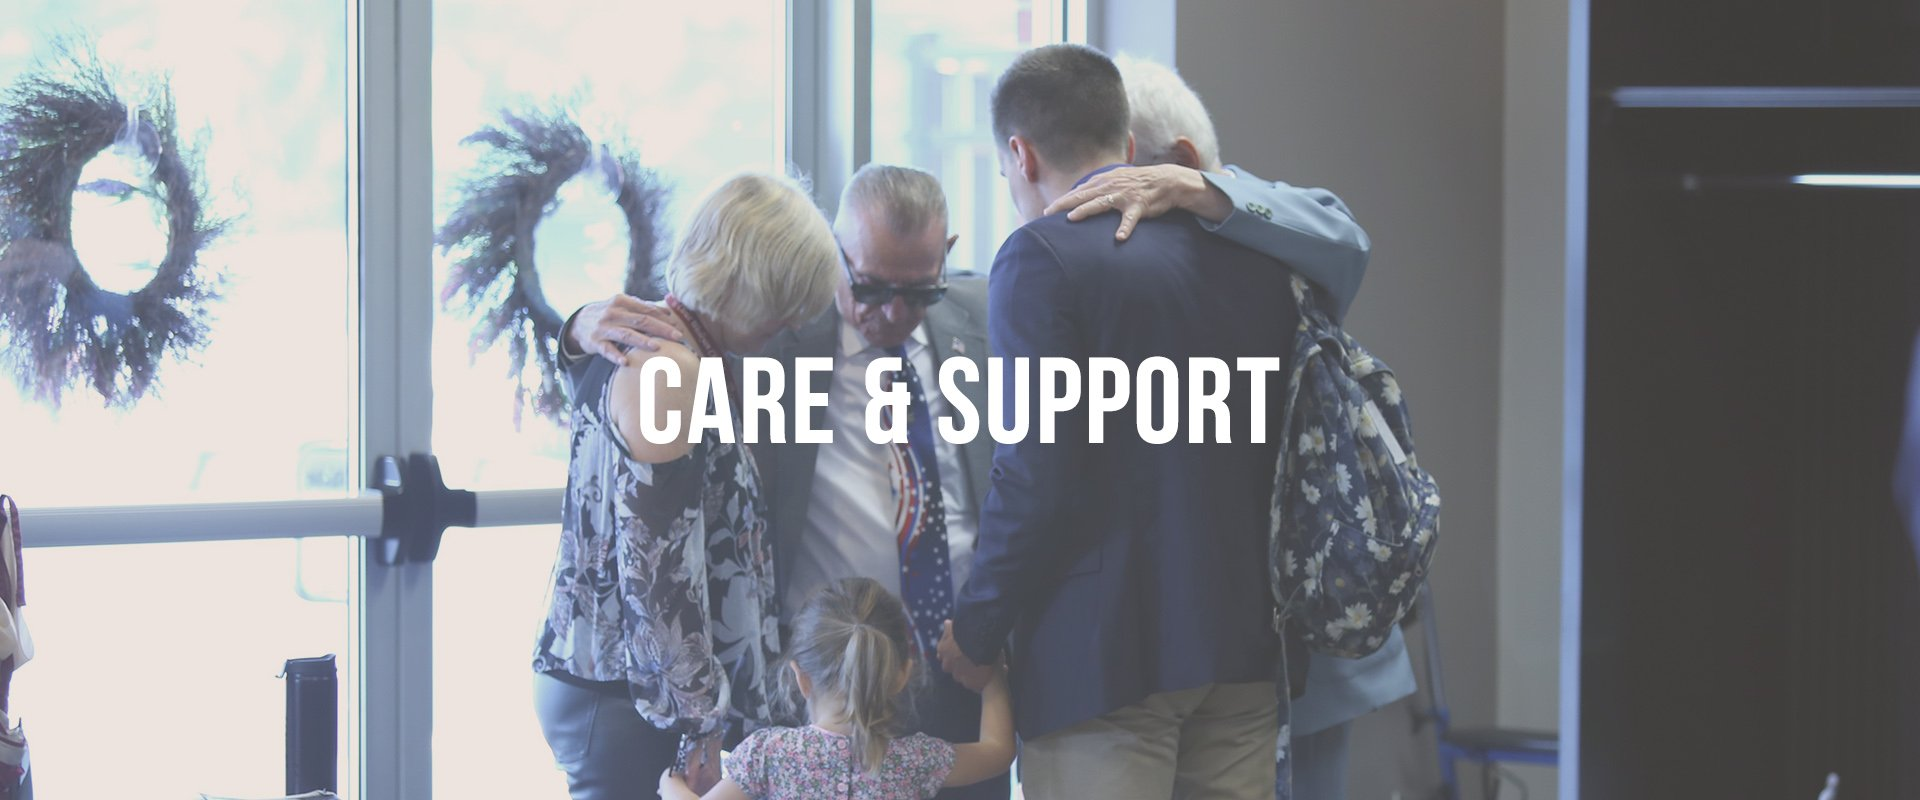 care-and-support-header